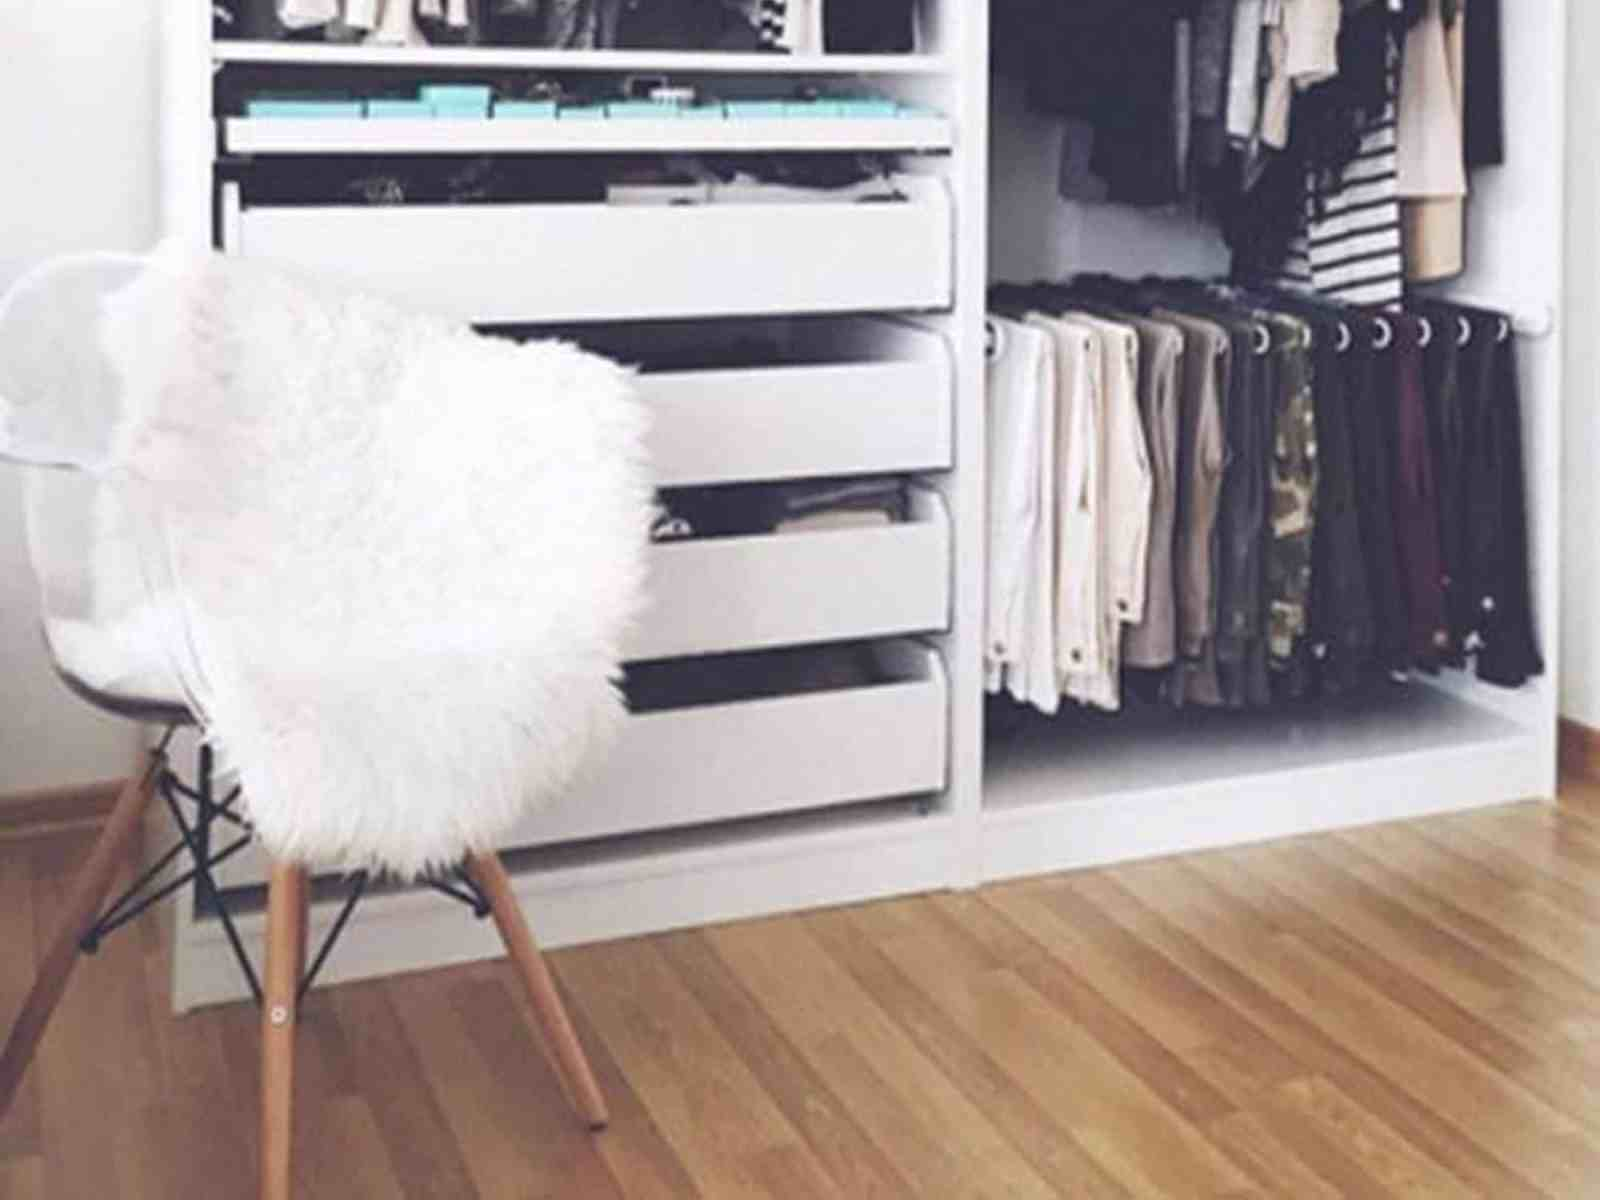 If you're anything like me, you have a hard time keeping it clean. I have so much stuff that it's hard to keep track of it all and put it in a place where I'll remember it. So here are a few bedroom organization hacks for optimizing your space!